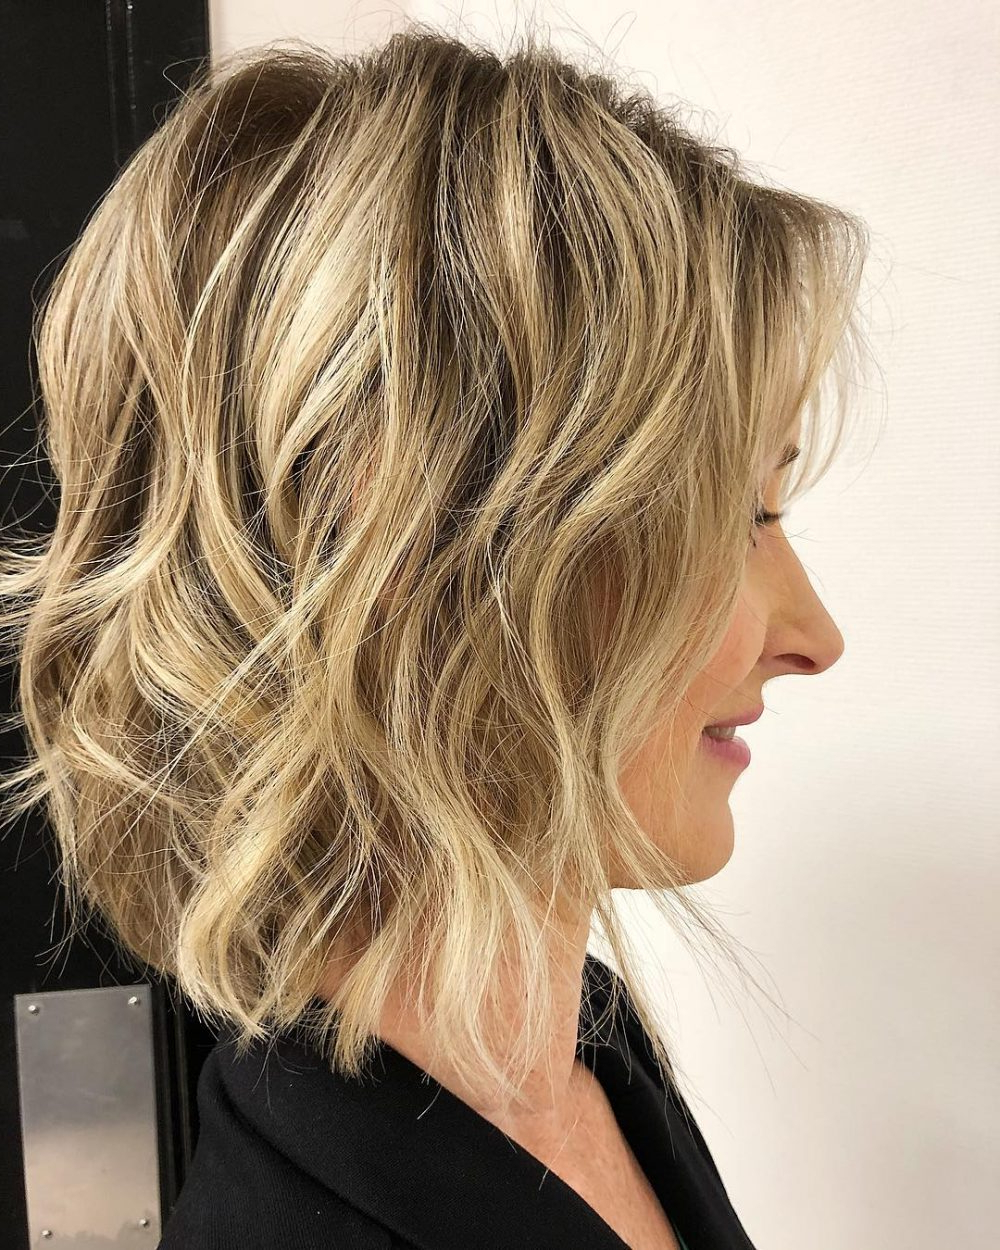 43 Perfect Short Hairstyles For Fine Hair In 2018 Within Short Wavy Haircuts With Messy Layers (Gallery 10 of 20)